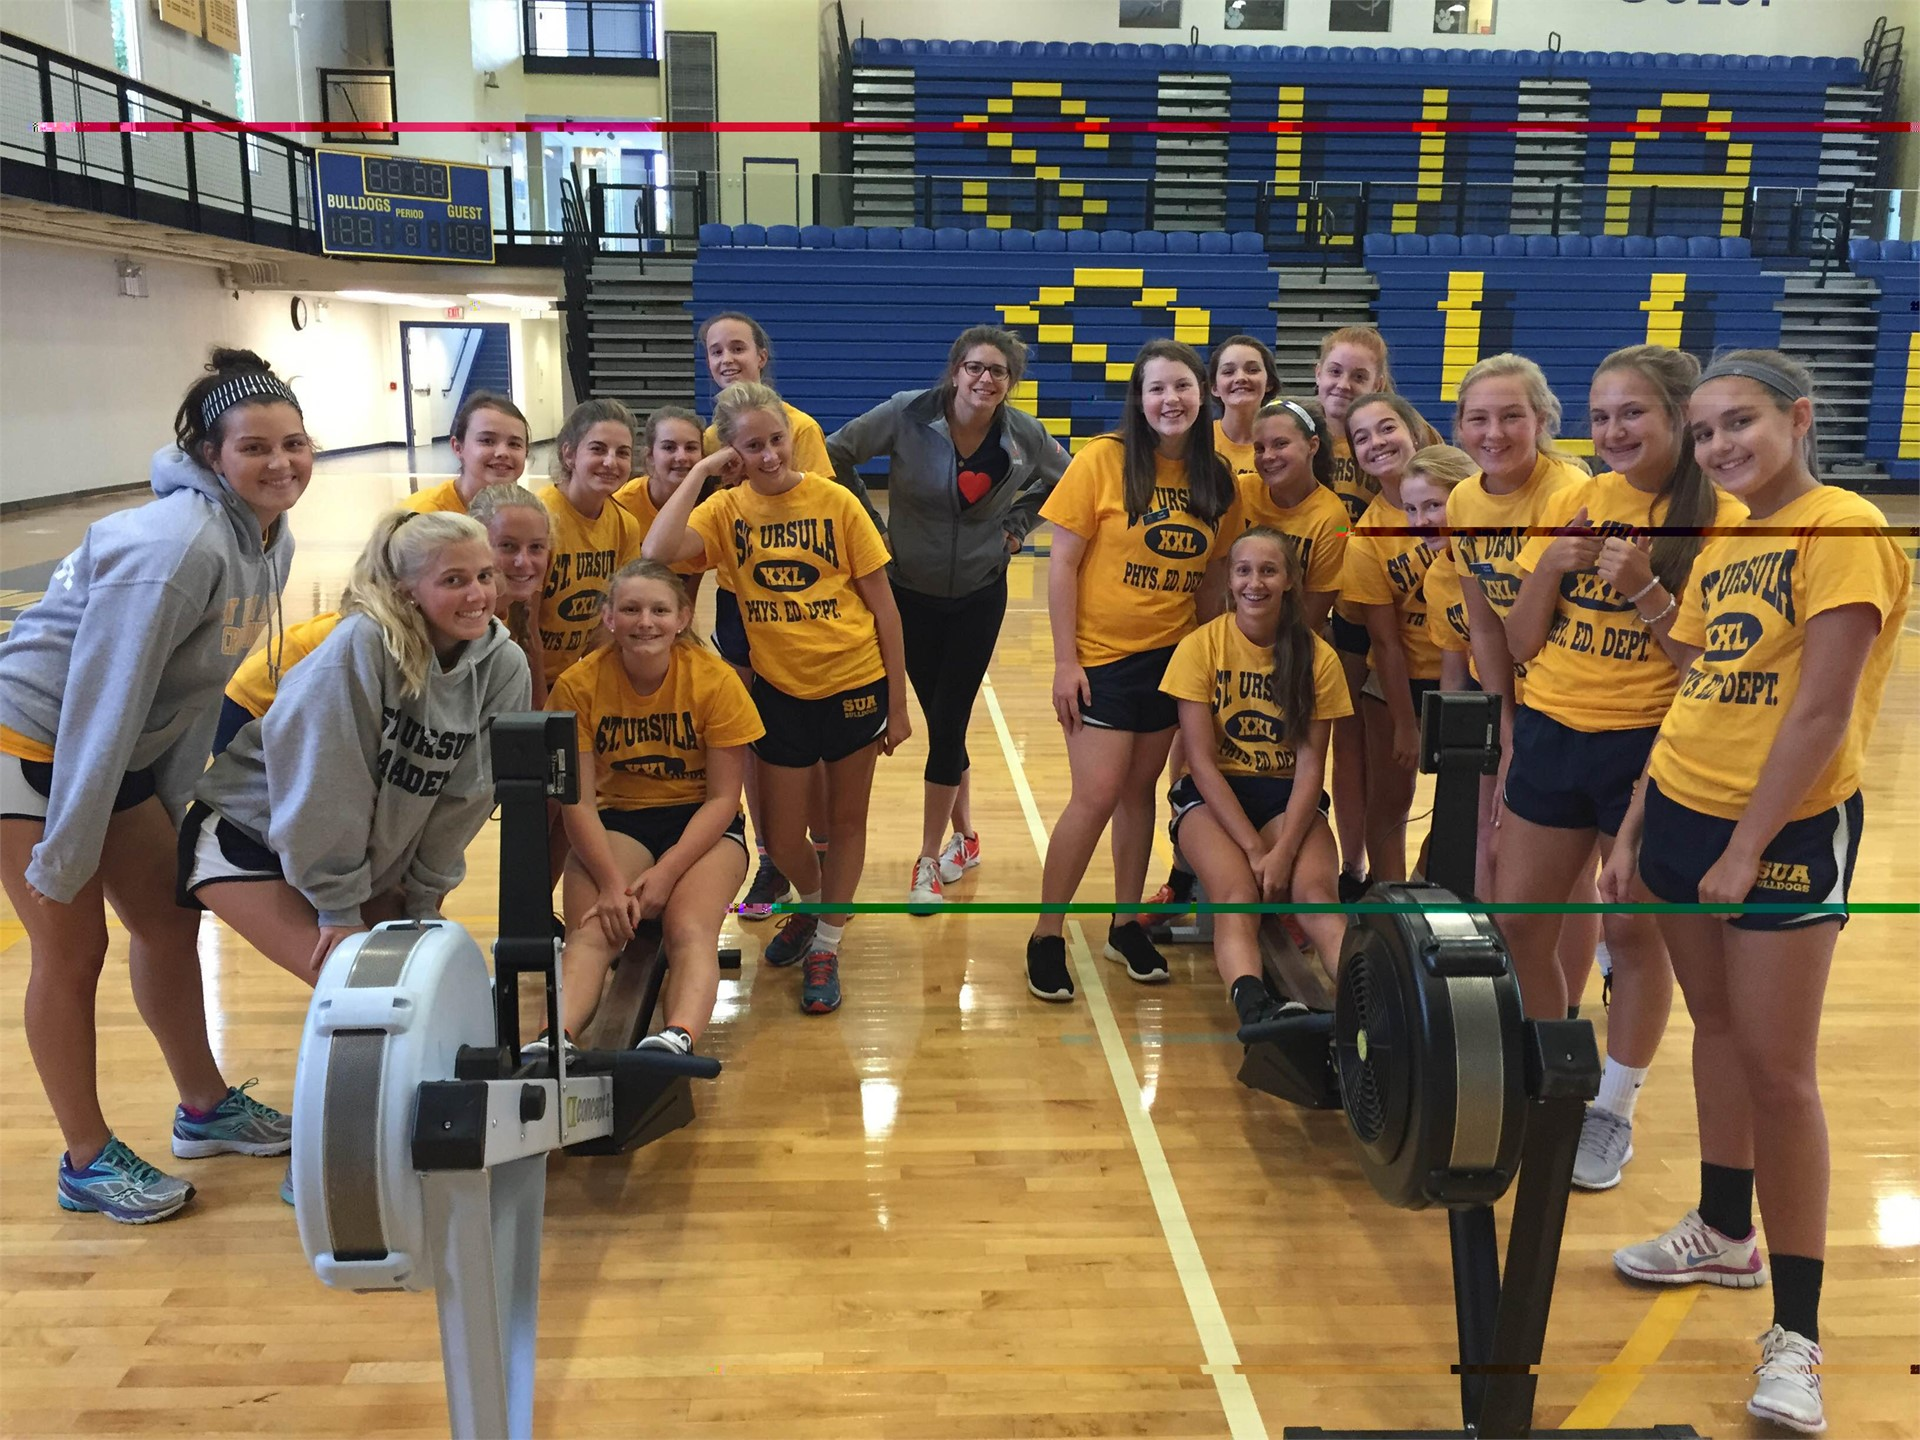 Alumna and Cincy Jr. Rowing Club Coach Ruth brings rowing to SUA gym class!